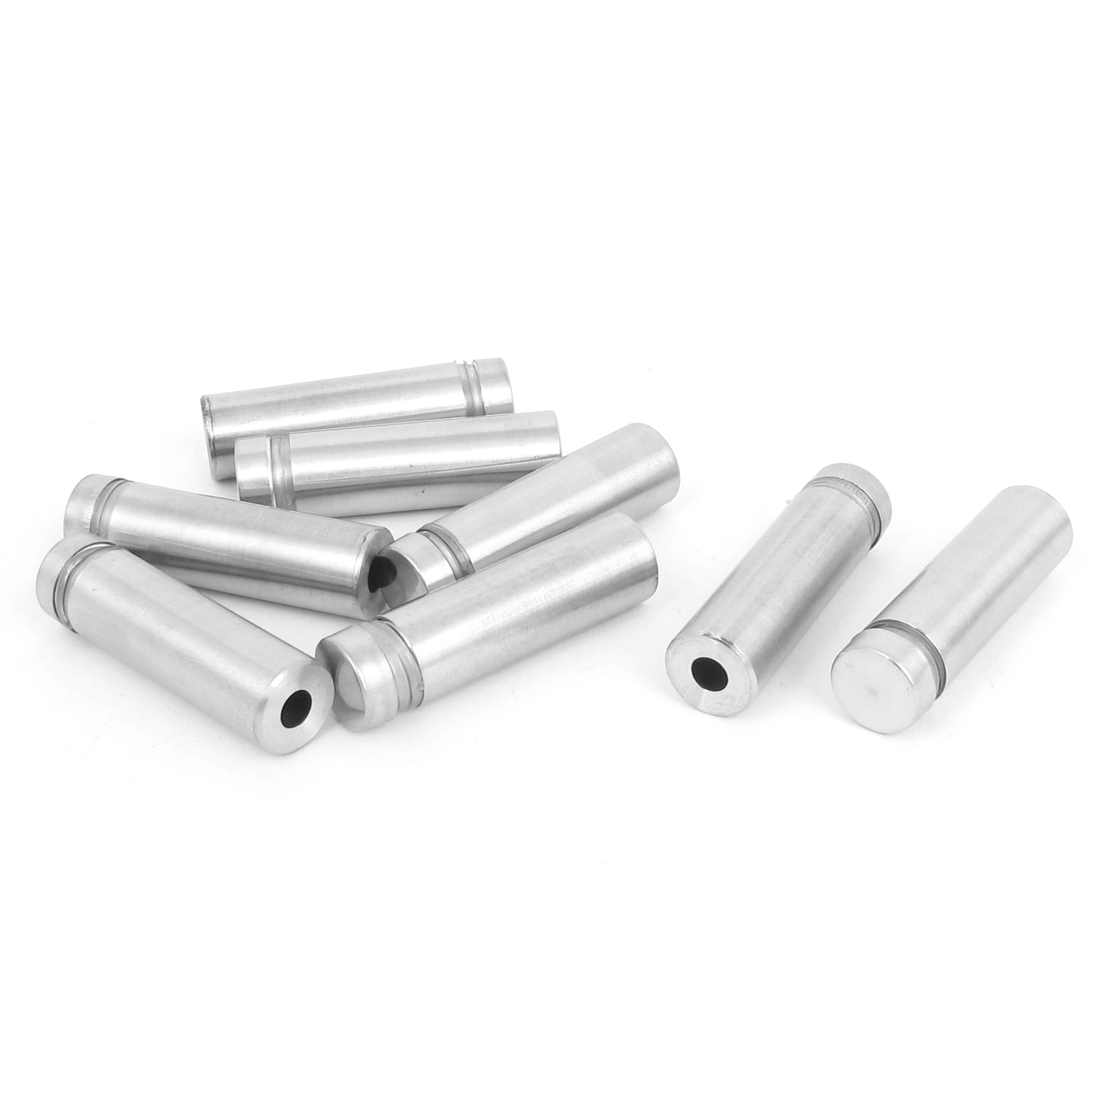 12mm x 40mm Stainless Steel Advertising Frameless Glass Standoff Pins Clamp 8pcs